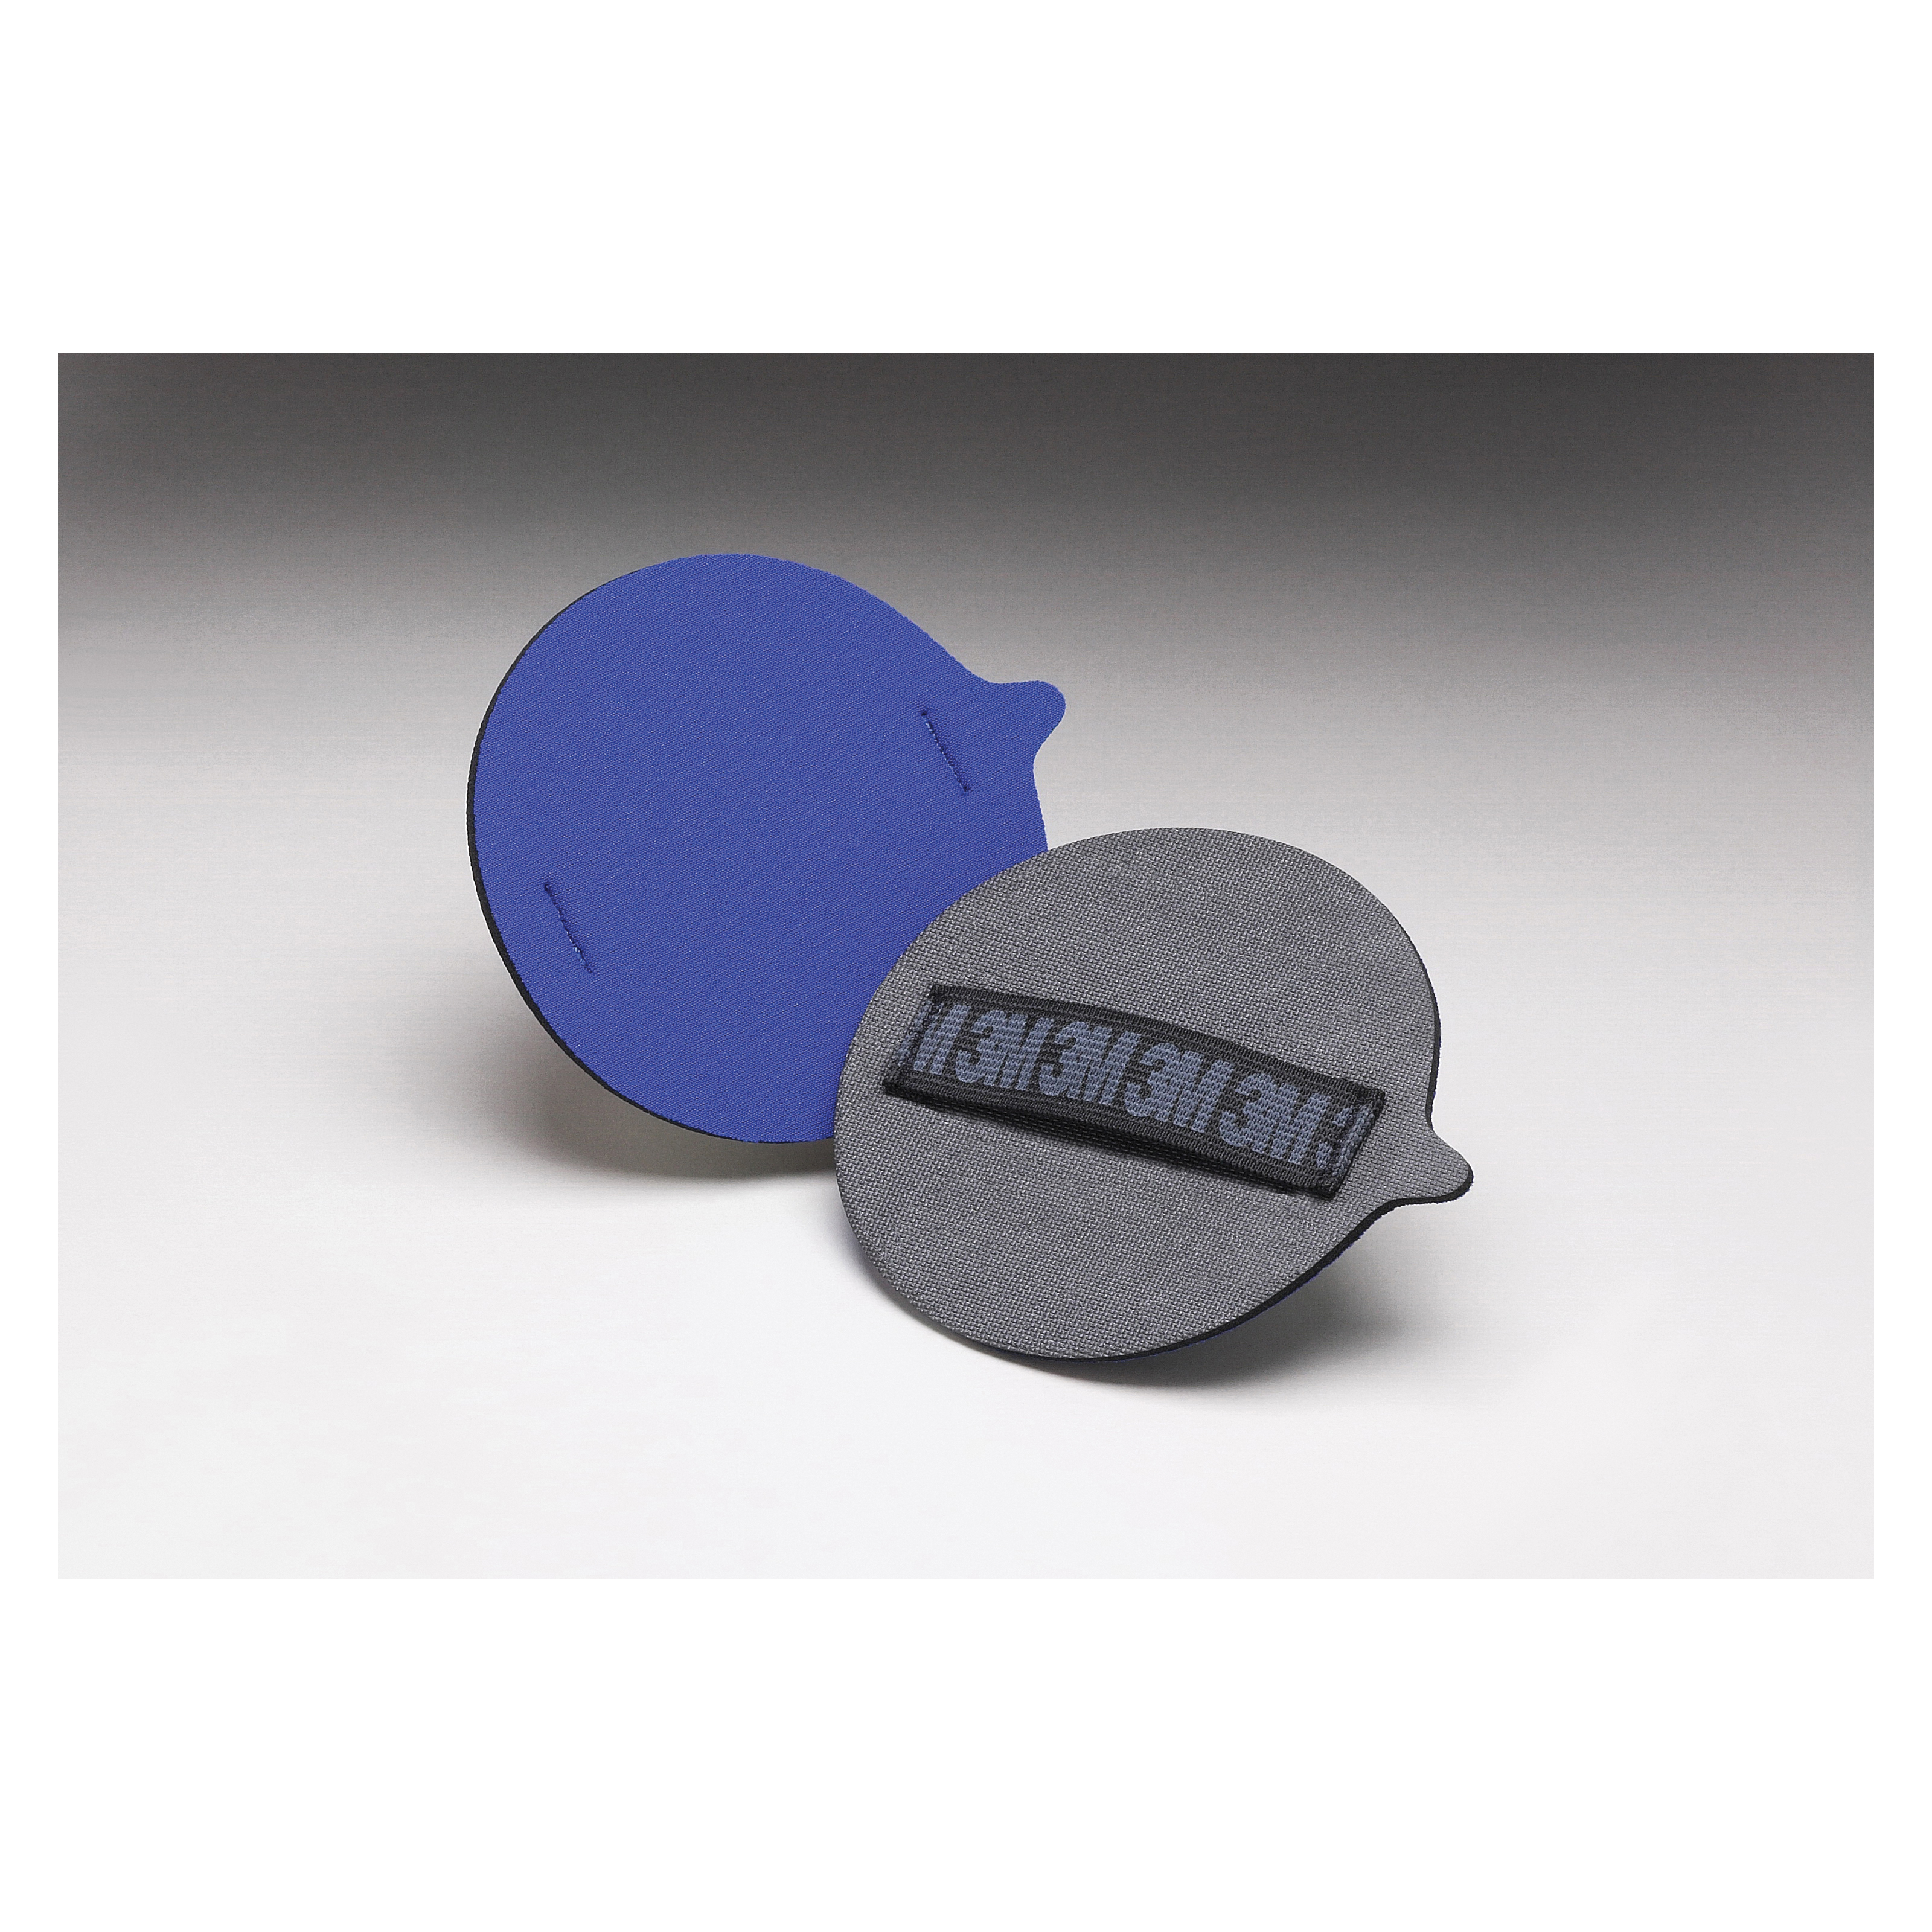 3M™ Stikit™ 051144-45198 Blue Face Disc Disc Hand Pad, 6 in W W/Dia, 1/8 in THK